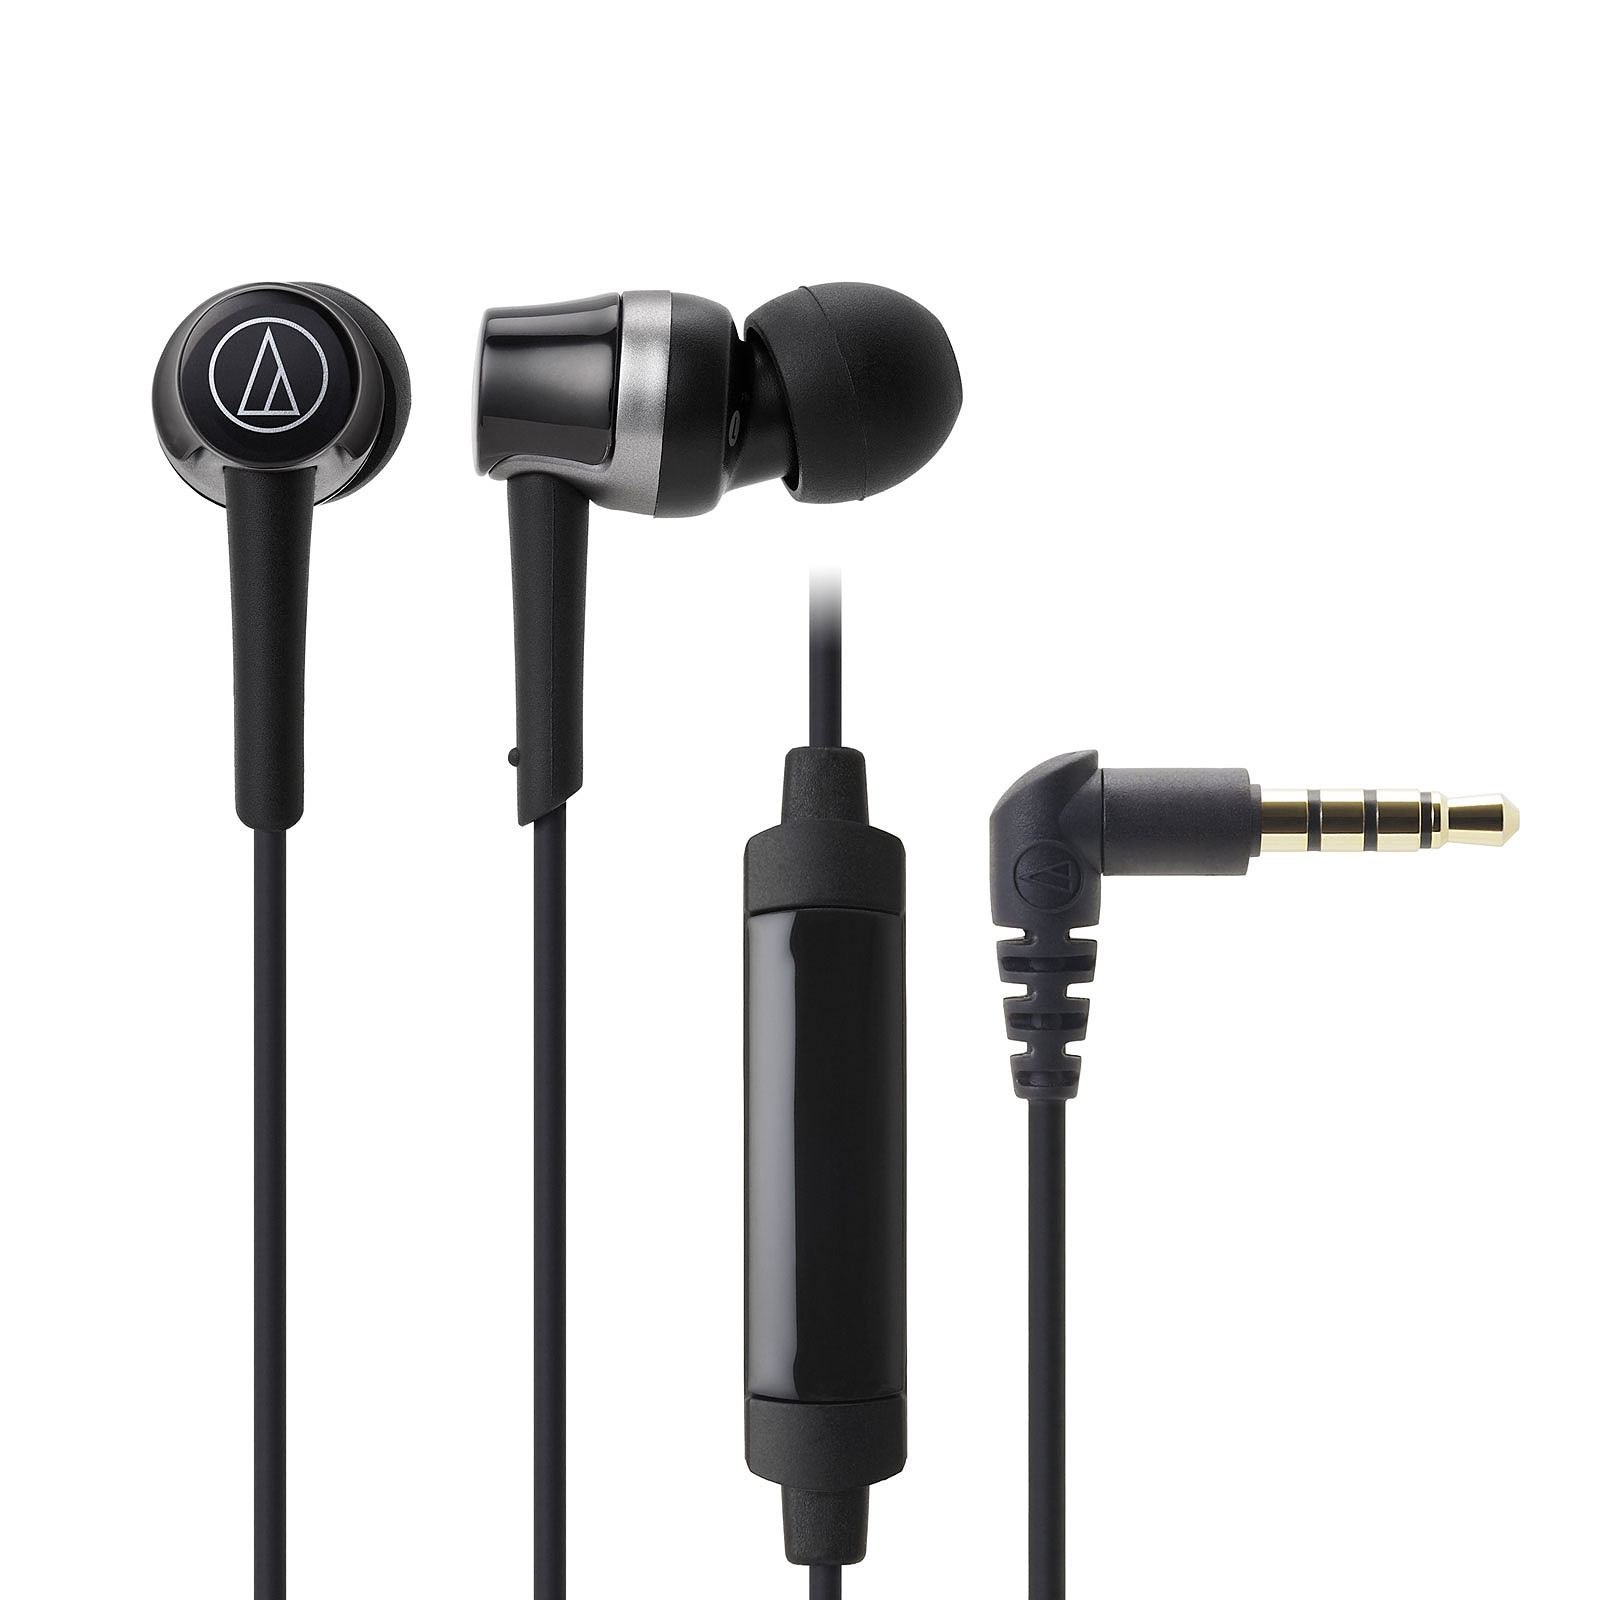 Audio-Technica ATH-CKR30iS Noir